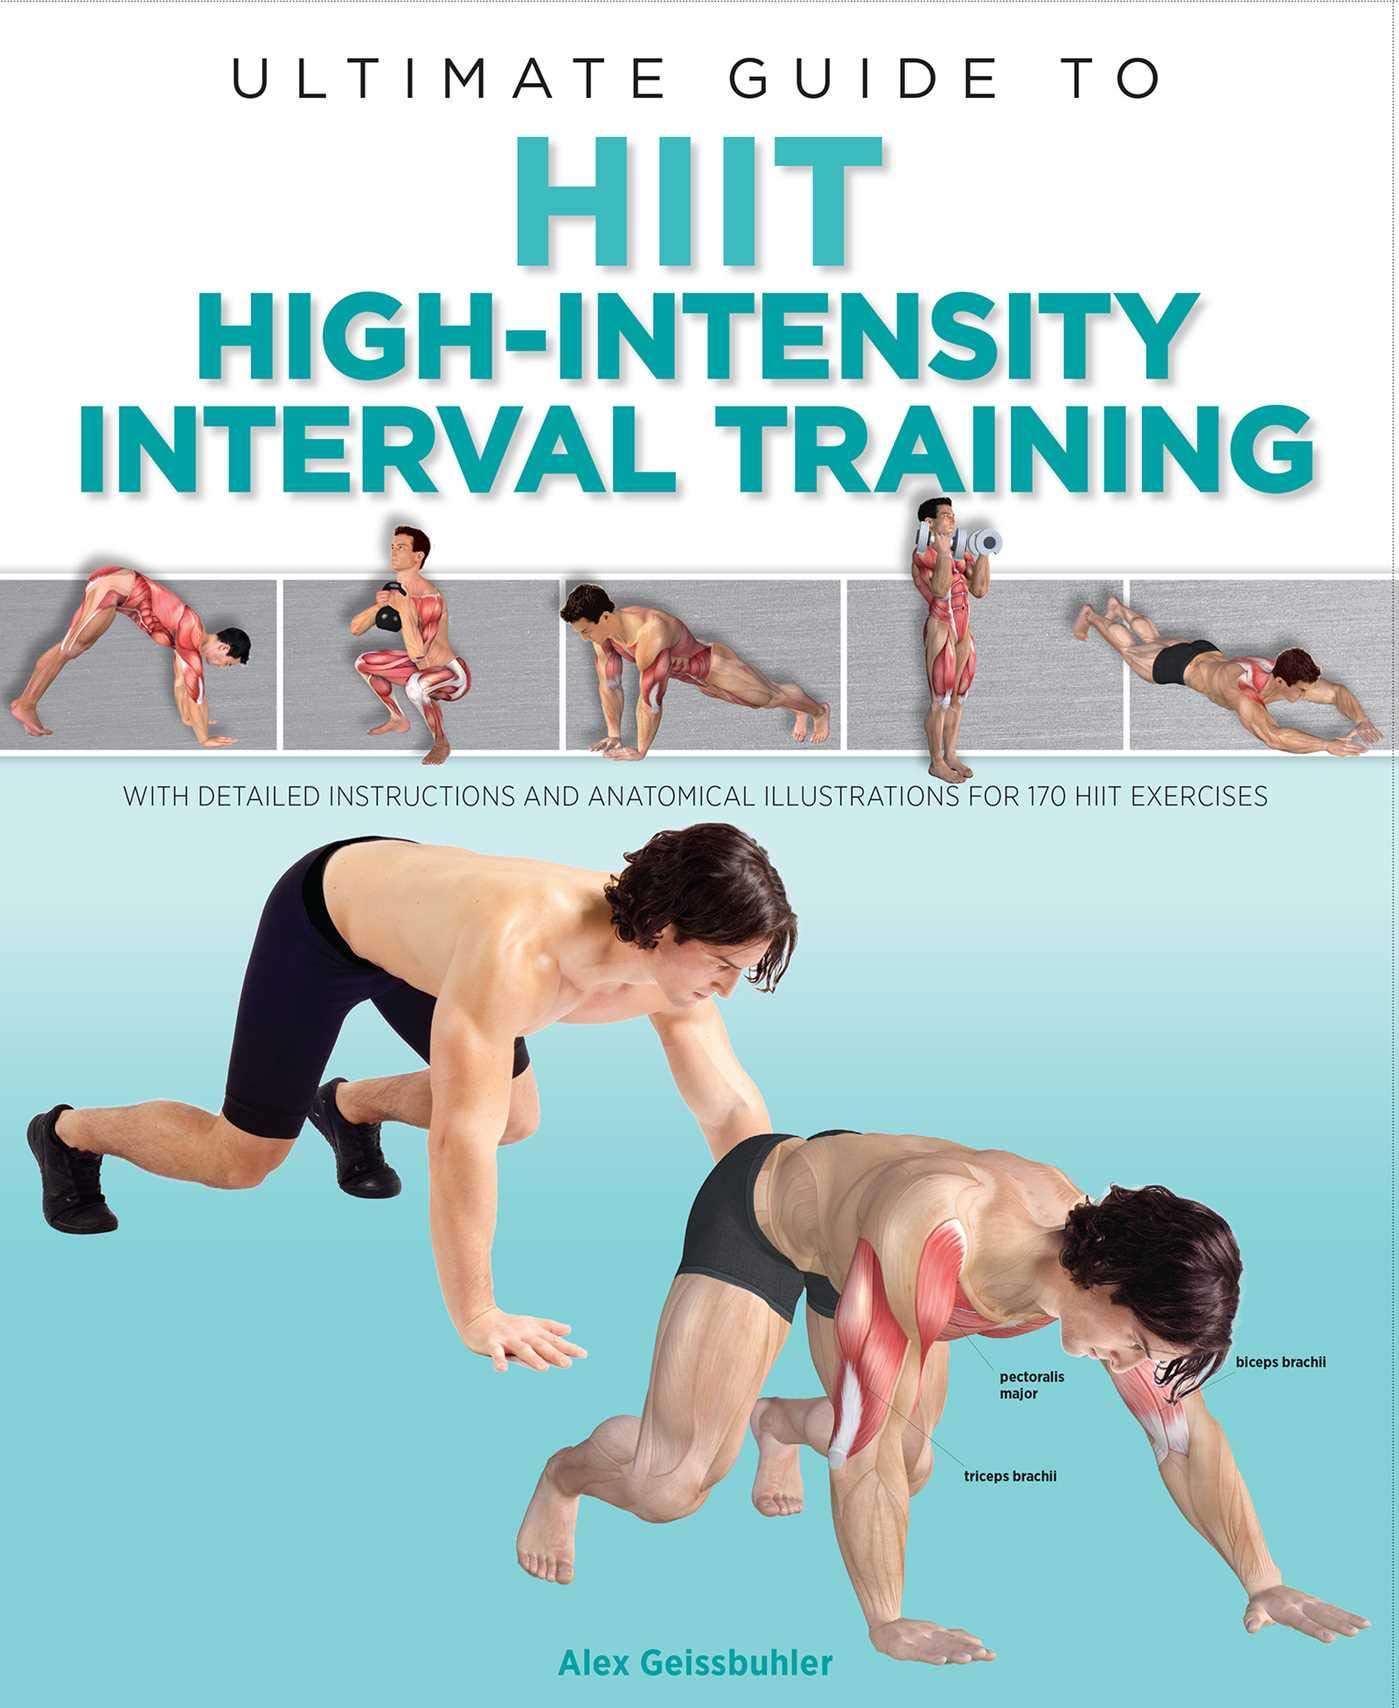 Image OfUltimate Guide To HIIT: High-Intensity Interval Training